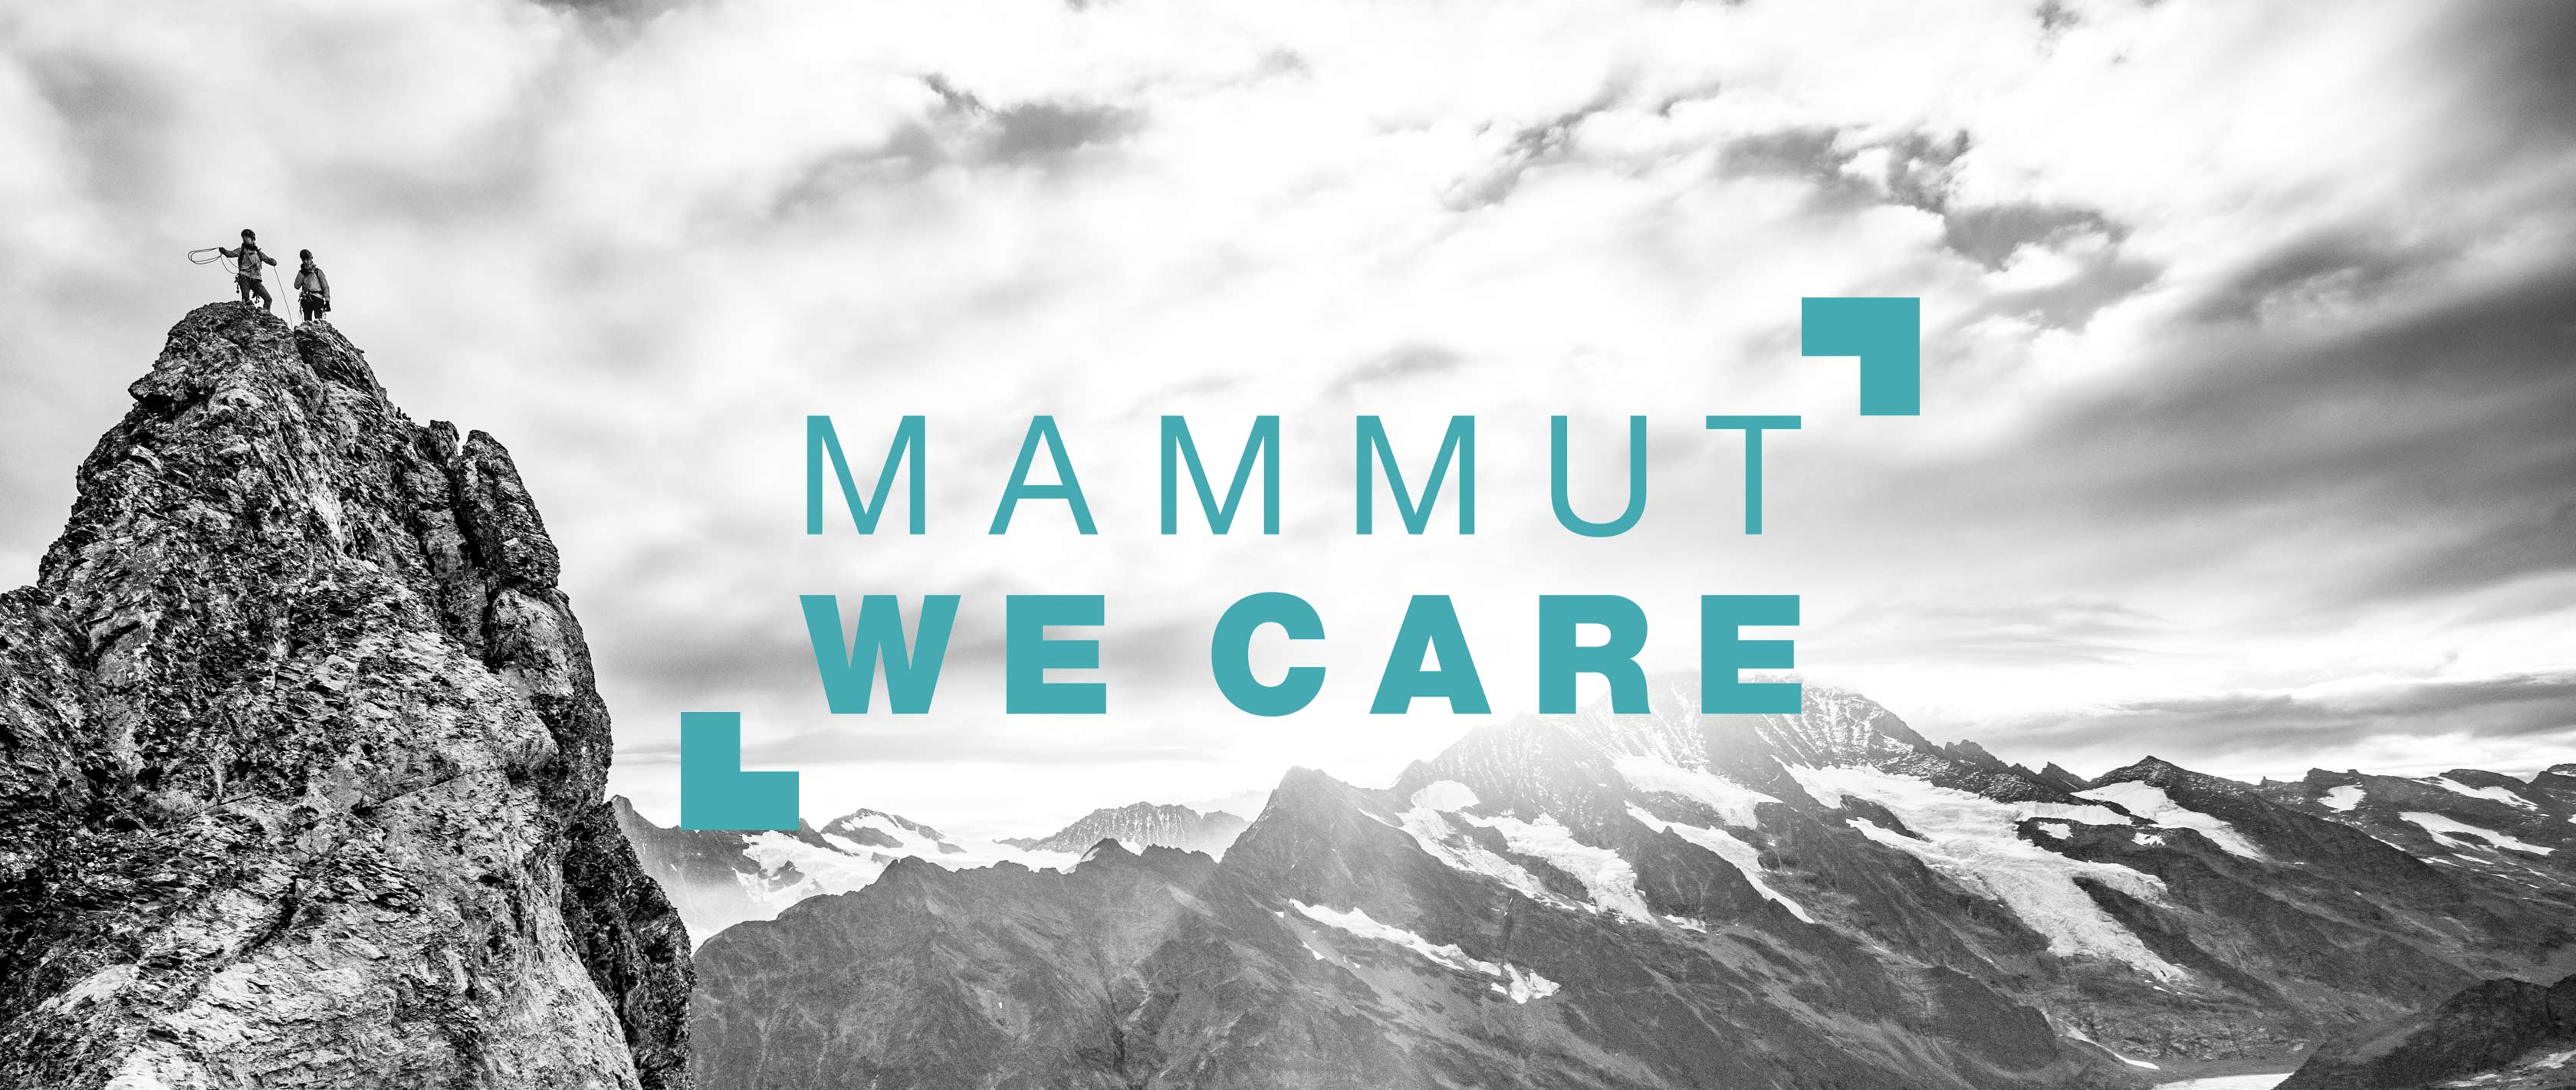 Mammut We Care